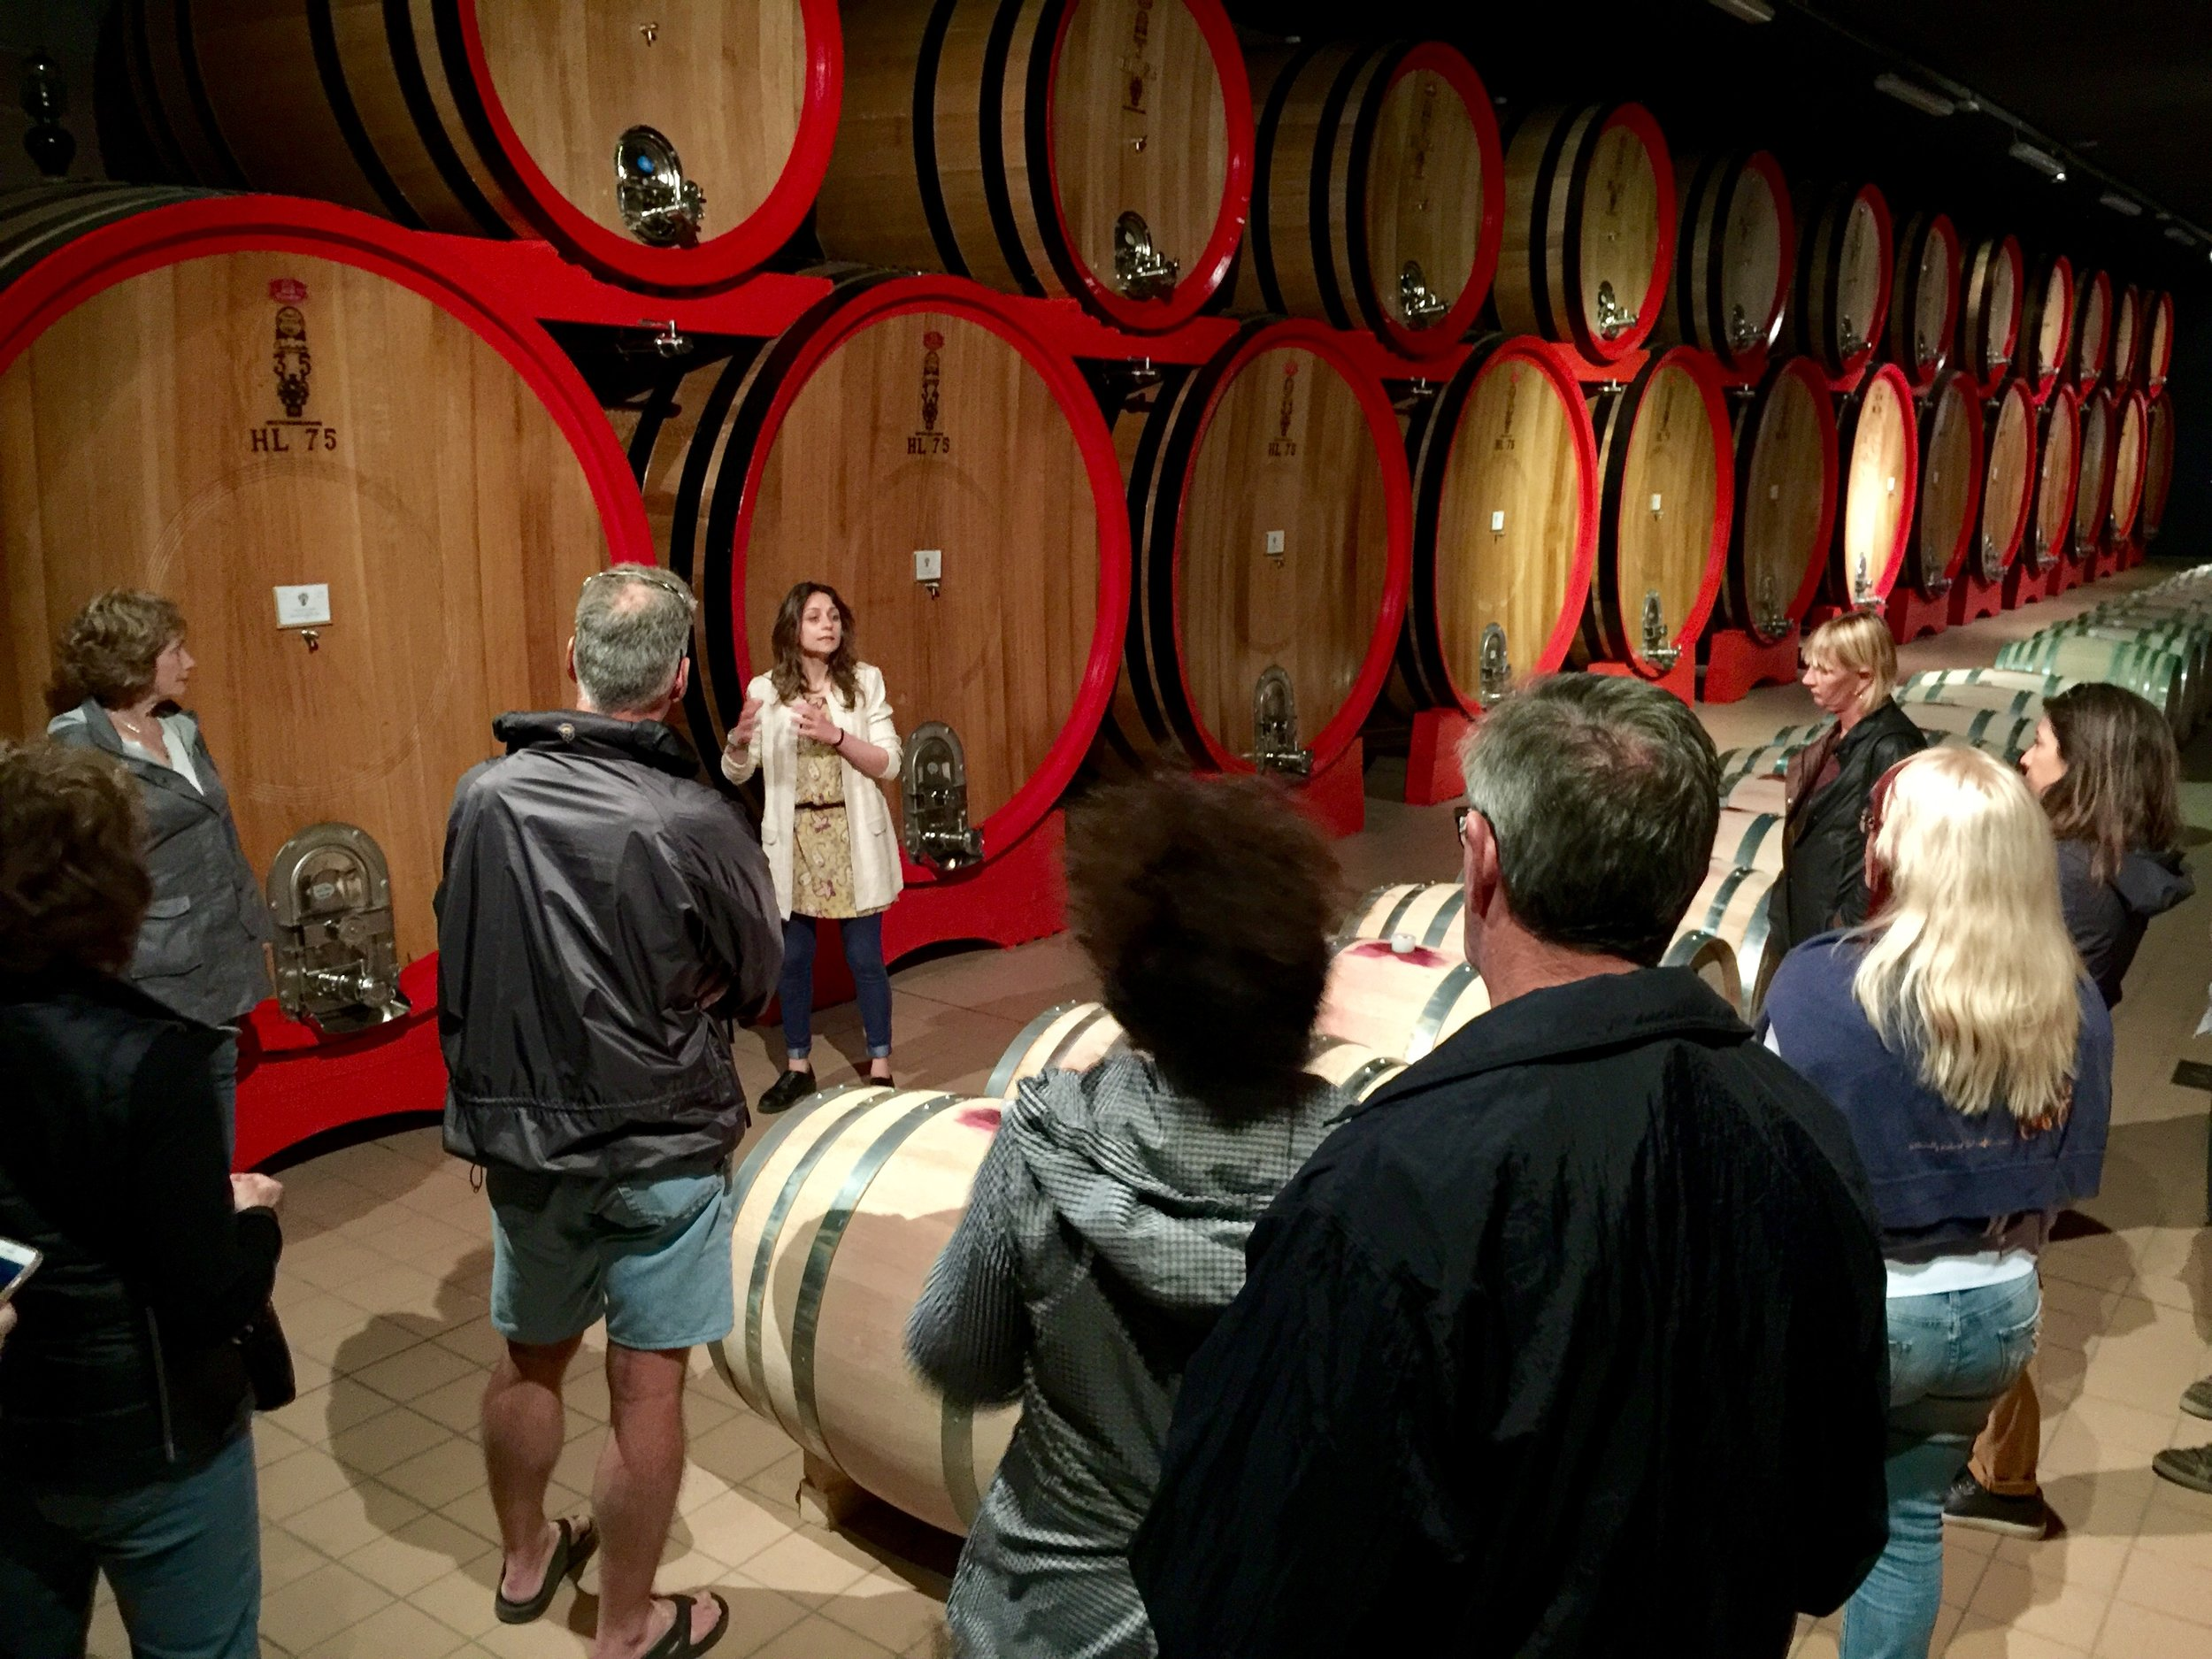 Barrel room at Ciacci Piccolomini winery.